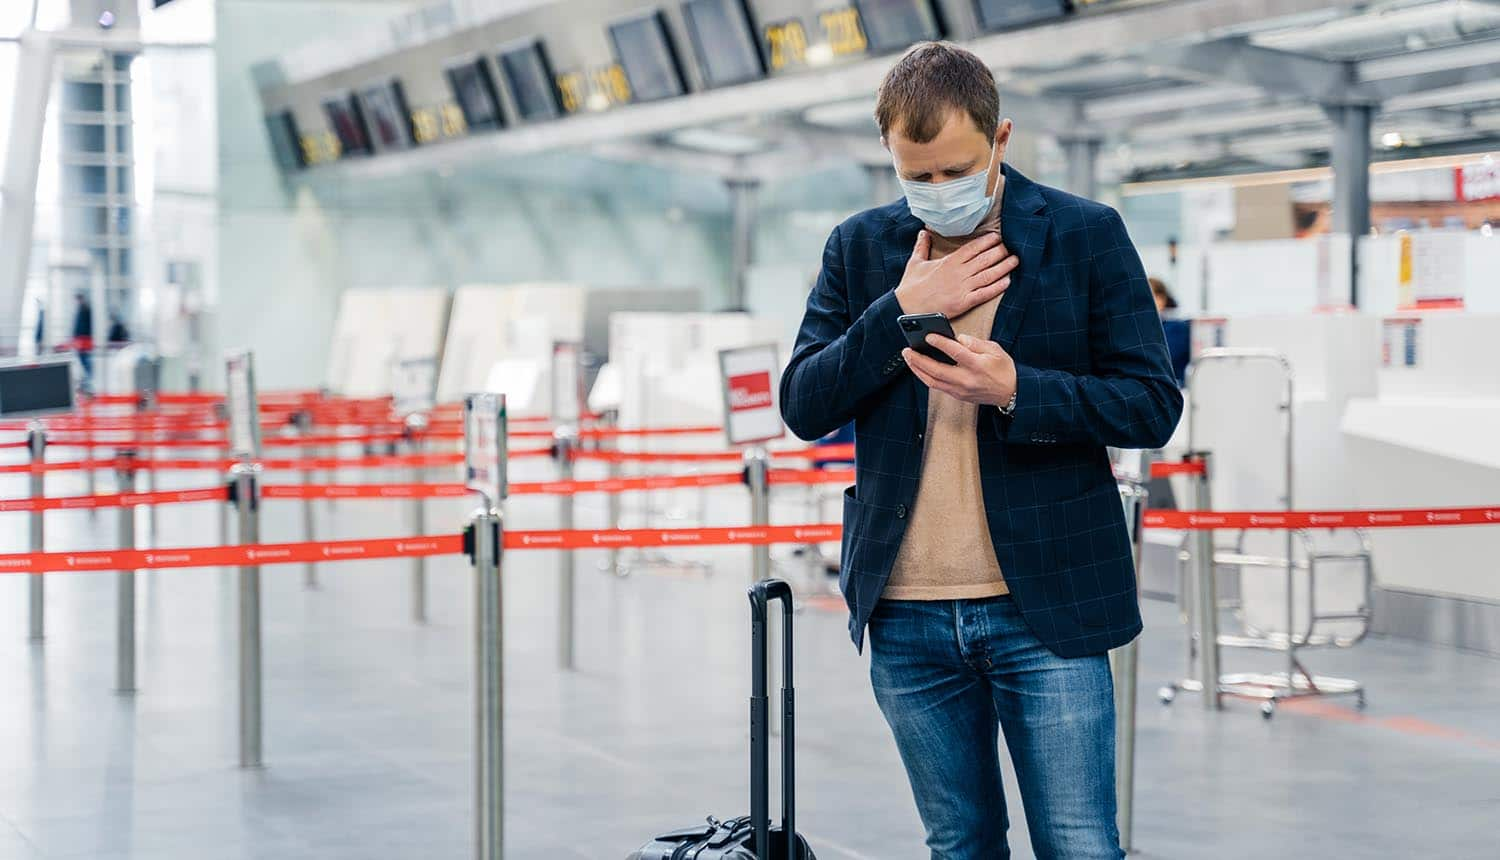 Businessman walks in airport terminal showing potential immunity passports as COVID vaccine rolls out